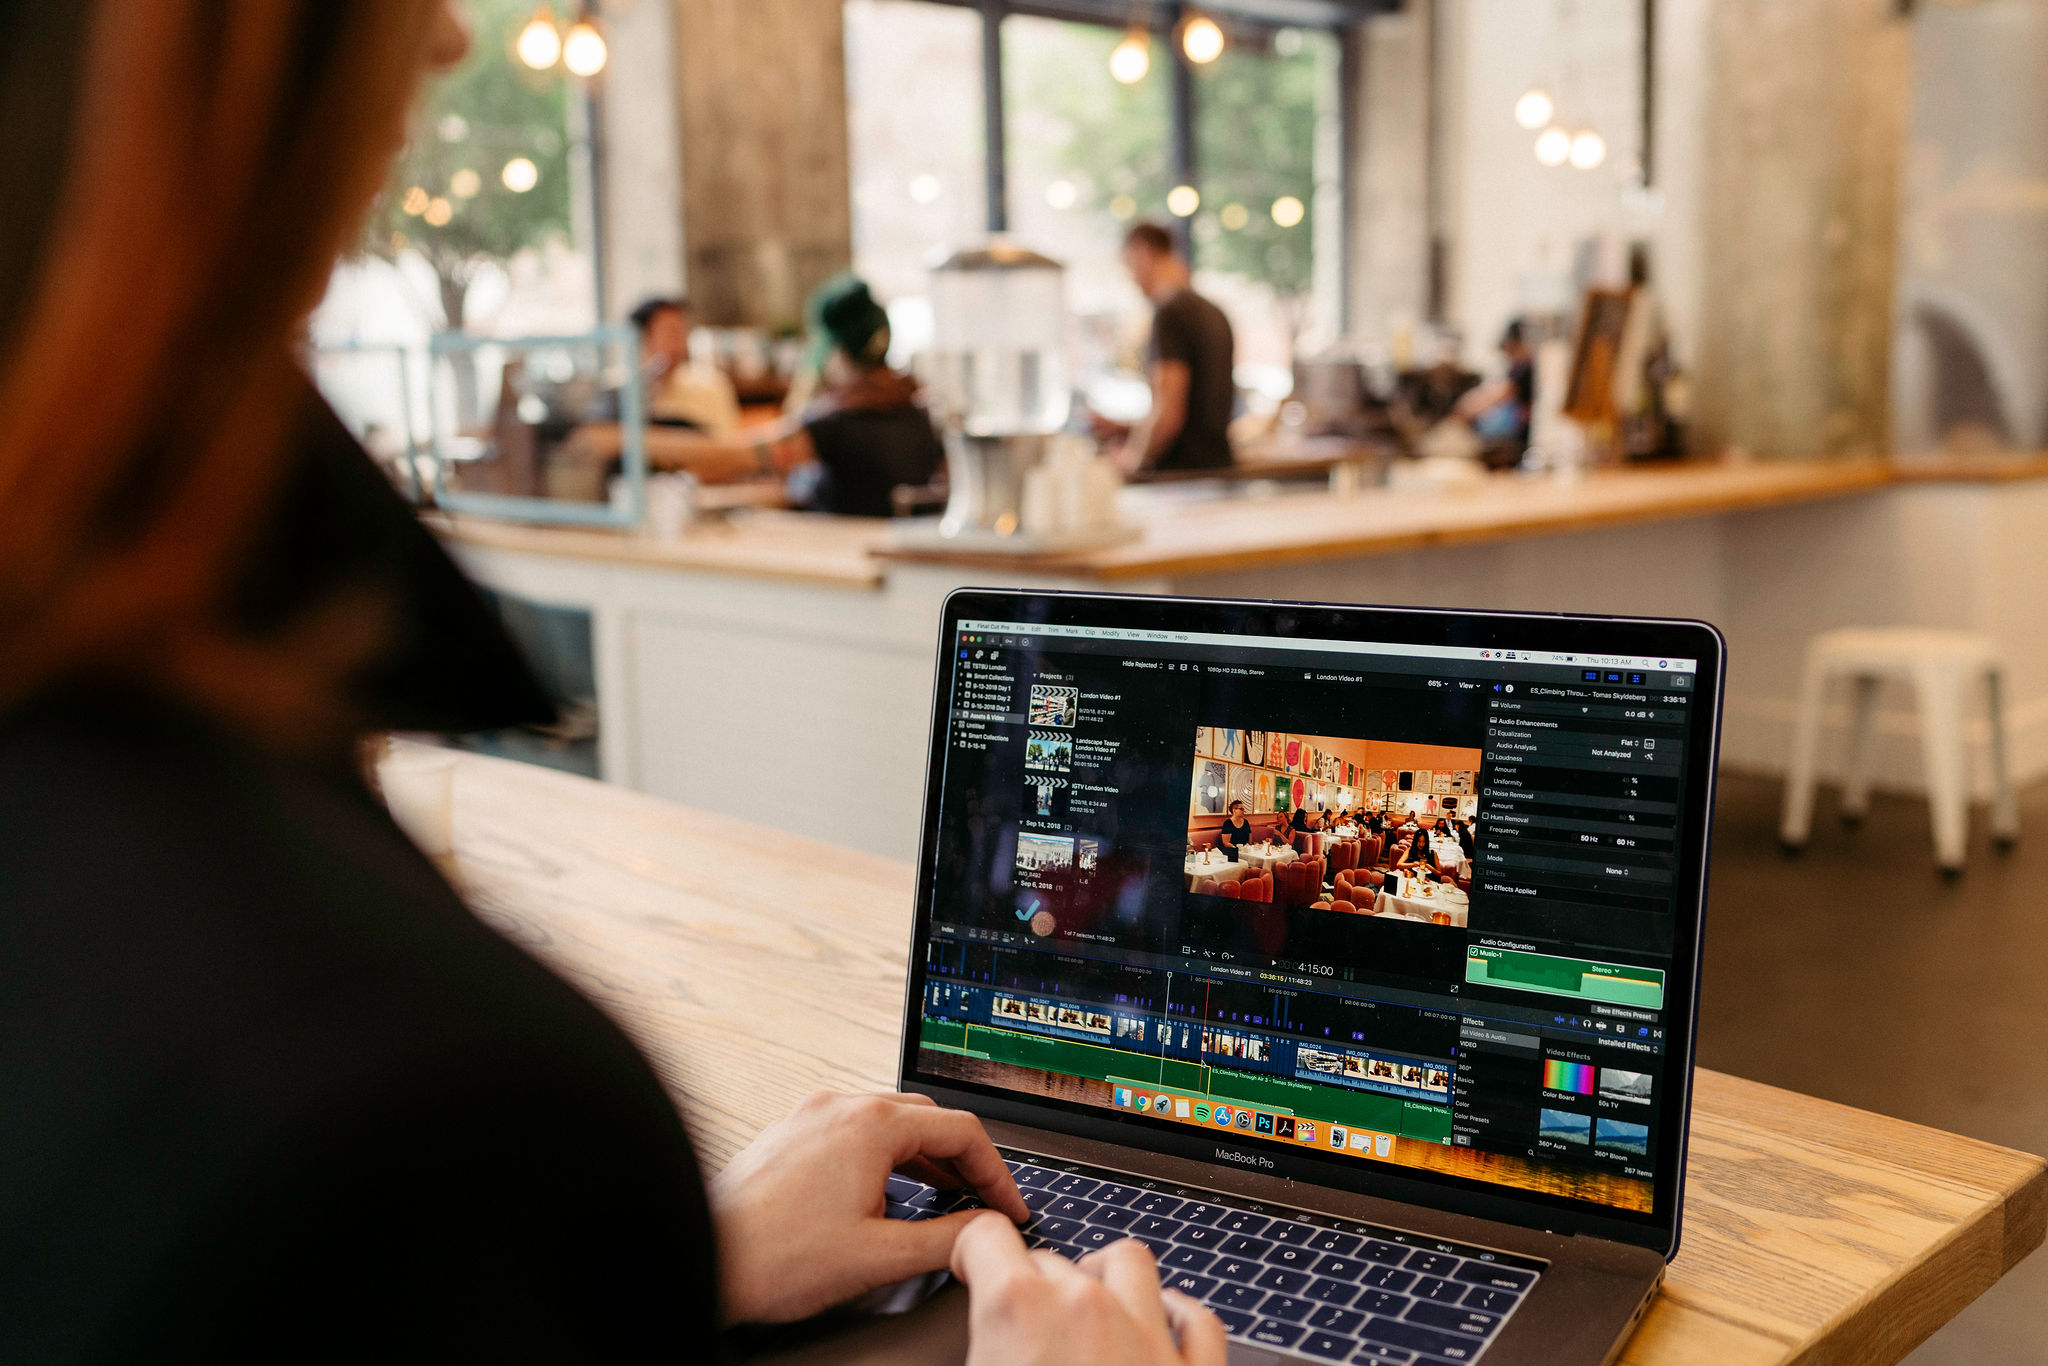 Editing Pro Course - Learn how to edit the perfect video that tells your brand's story.